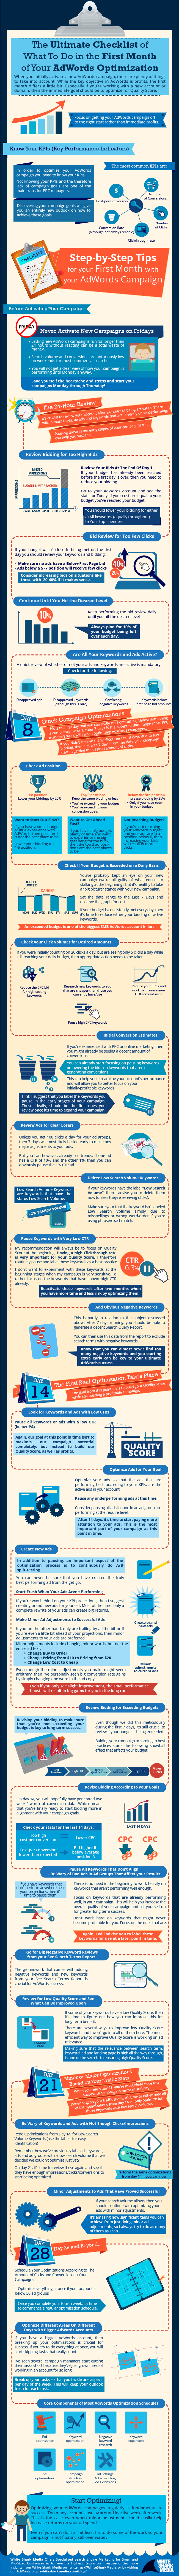 Ultimate list of how to Optimize the first month of AdWords #infografia #infographic #marketing